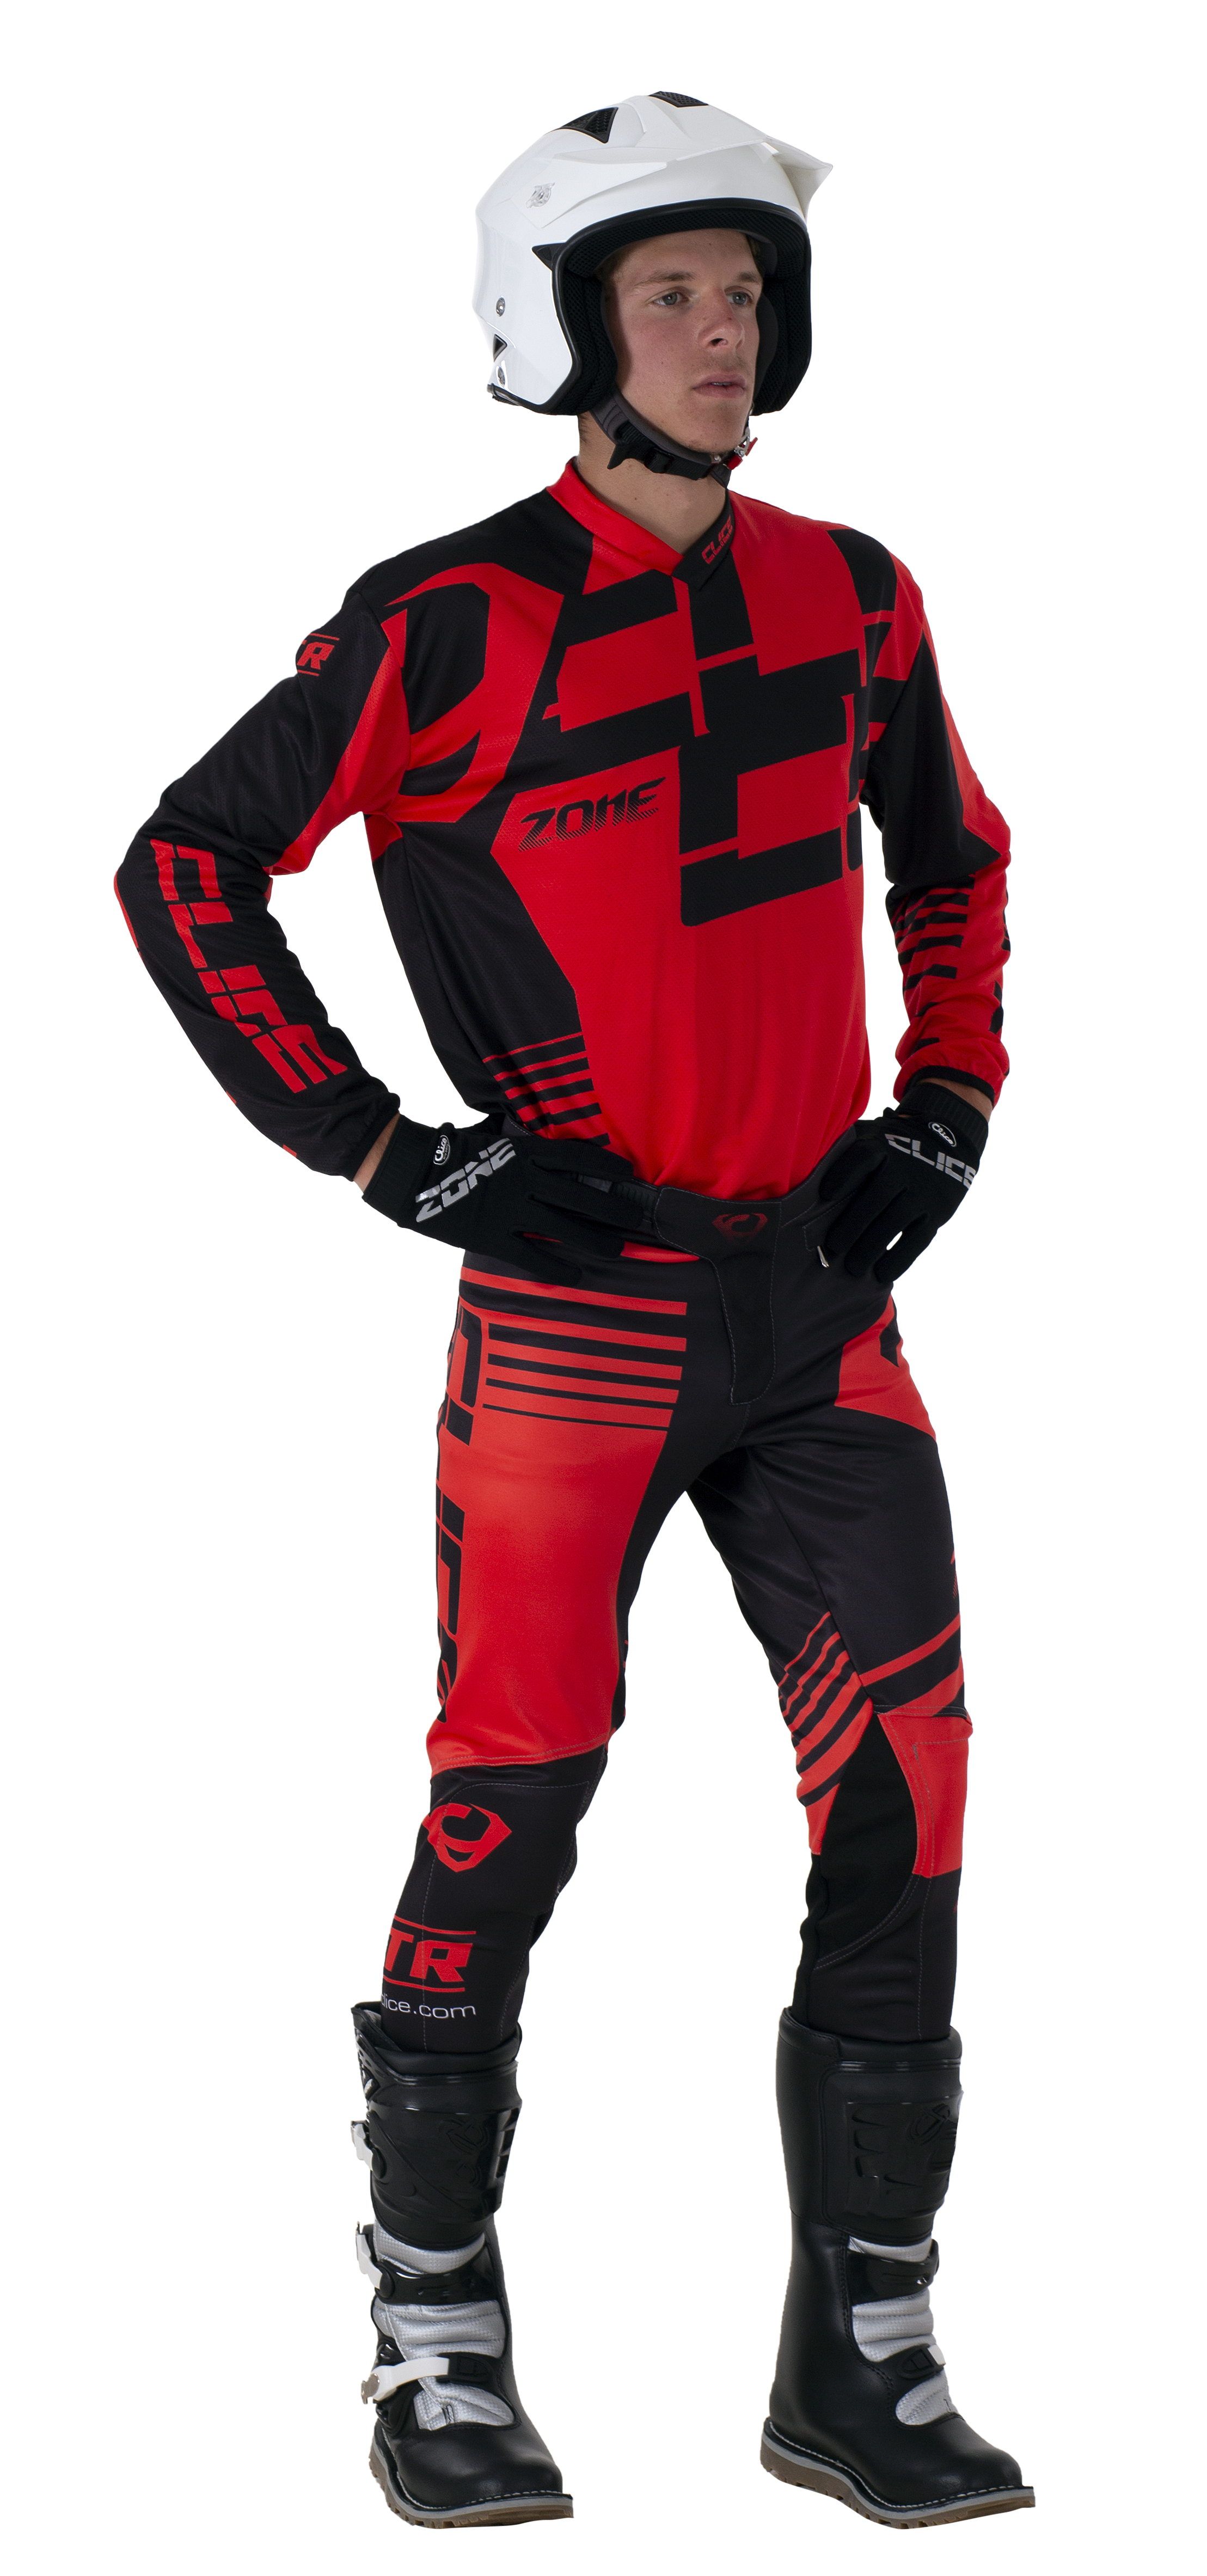 c.2533-zone-trial-jersey-red.png